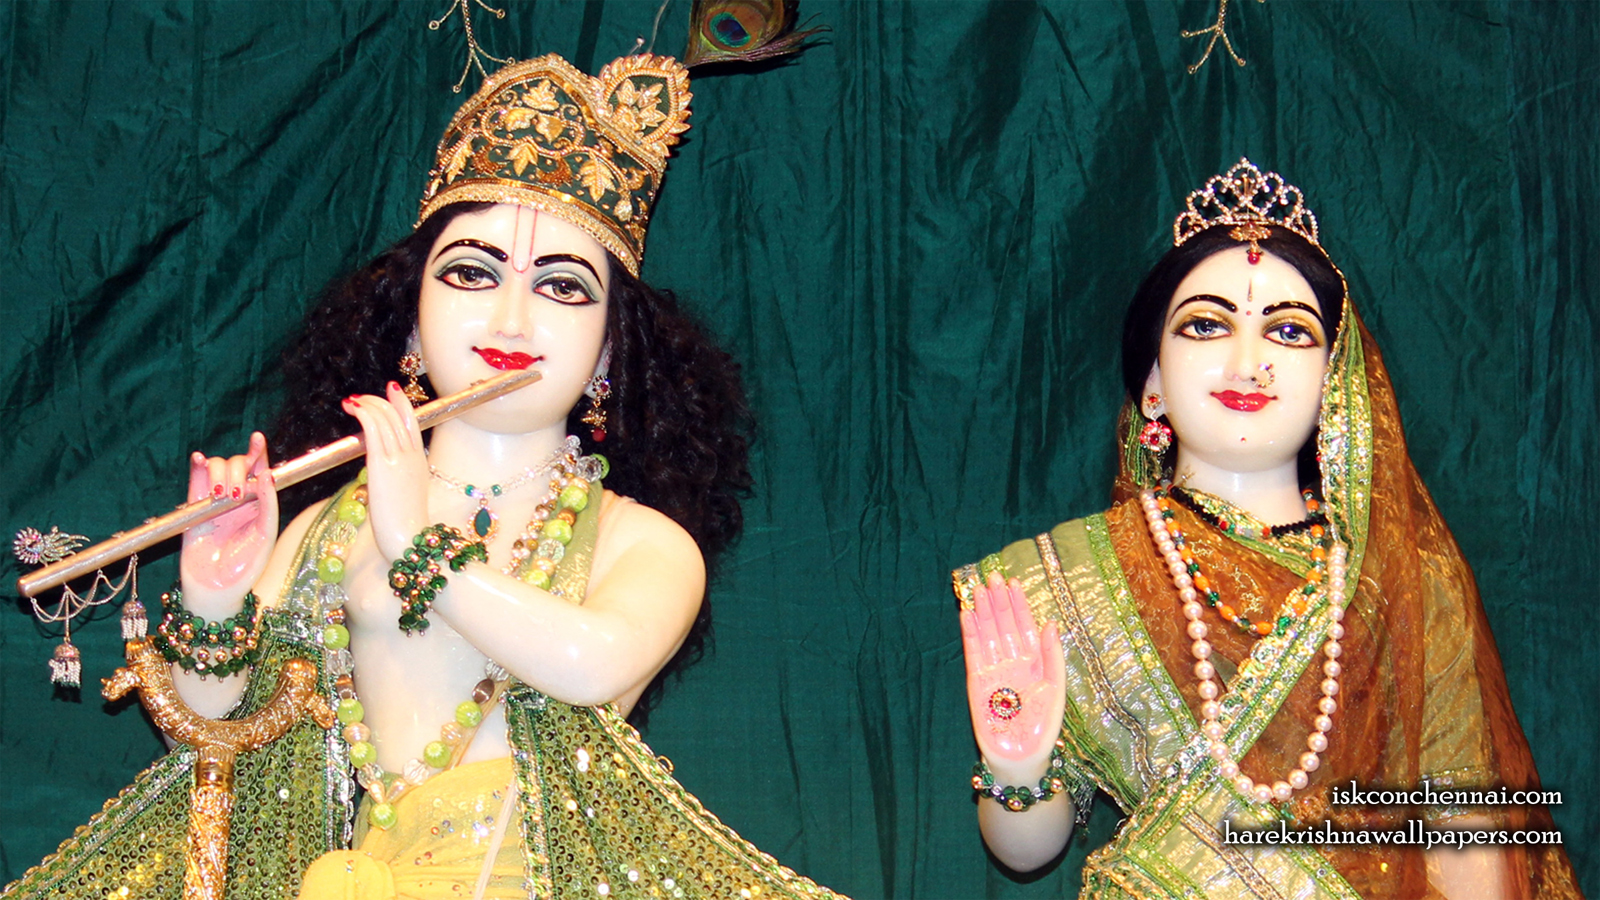 Sri Sri Radha Krishna Close up Wallpaper (013) Size 1600x900 Download